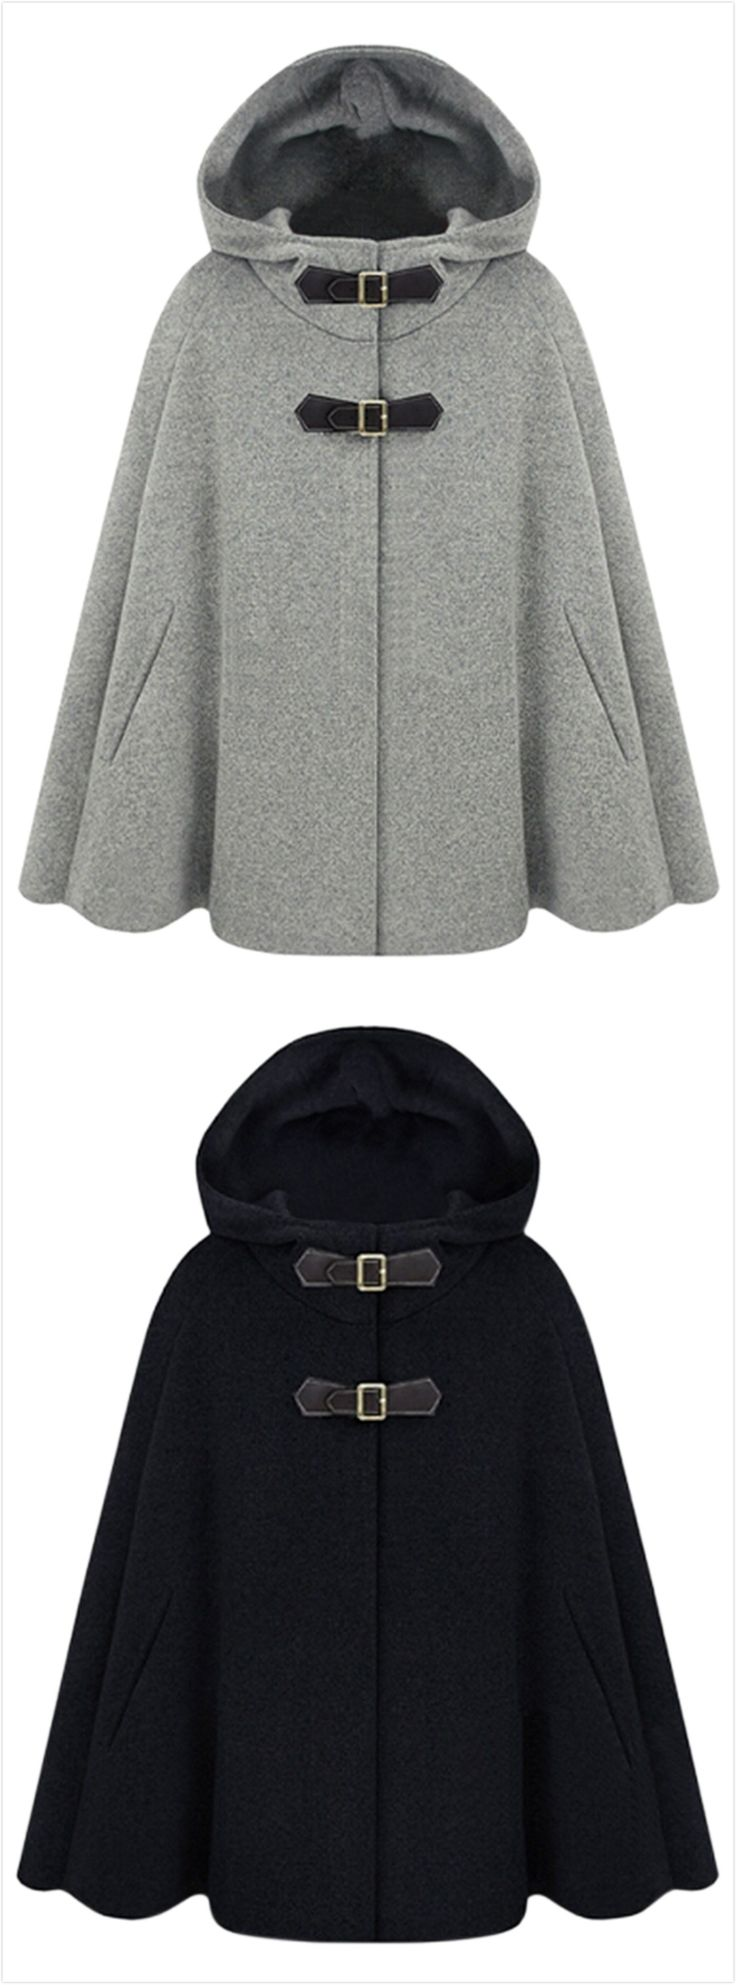 Women's Winter Wool Blend Hooded Cape Cloak Coat                                                                                                                                                                                 More